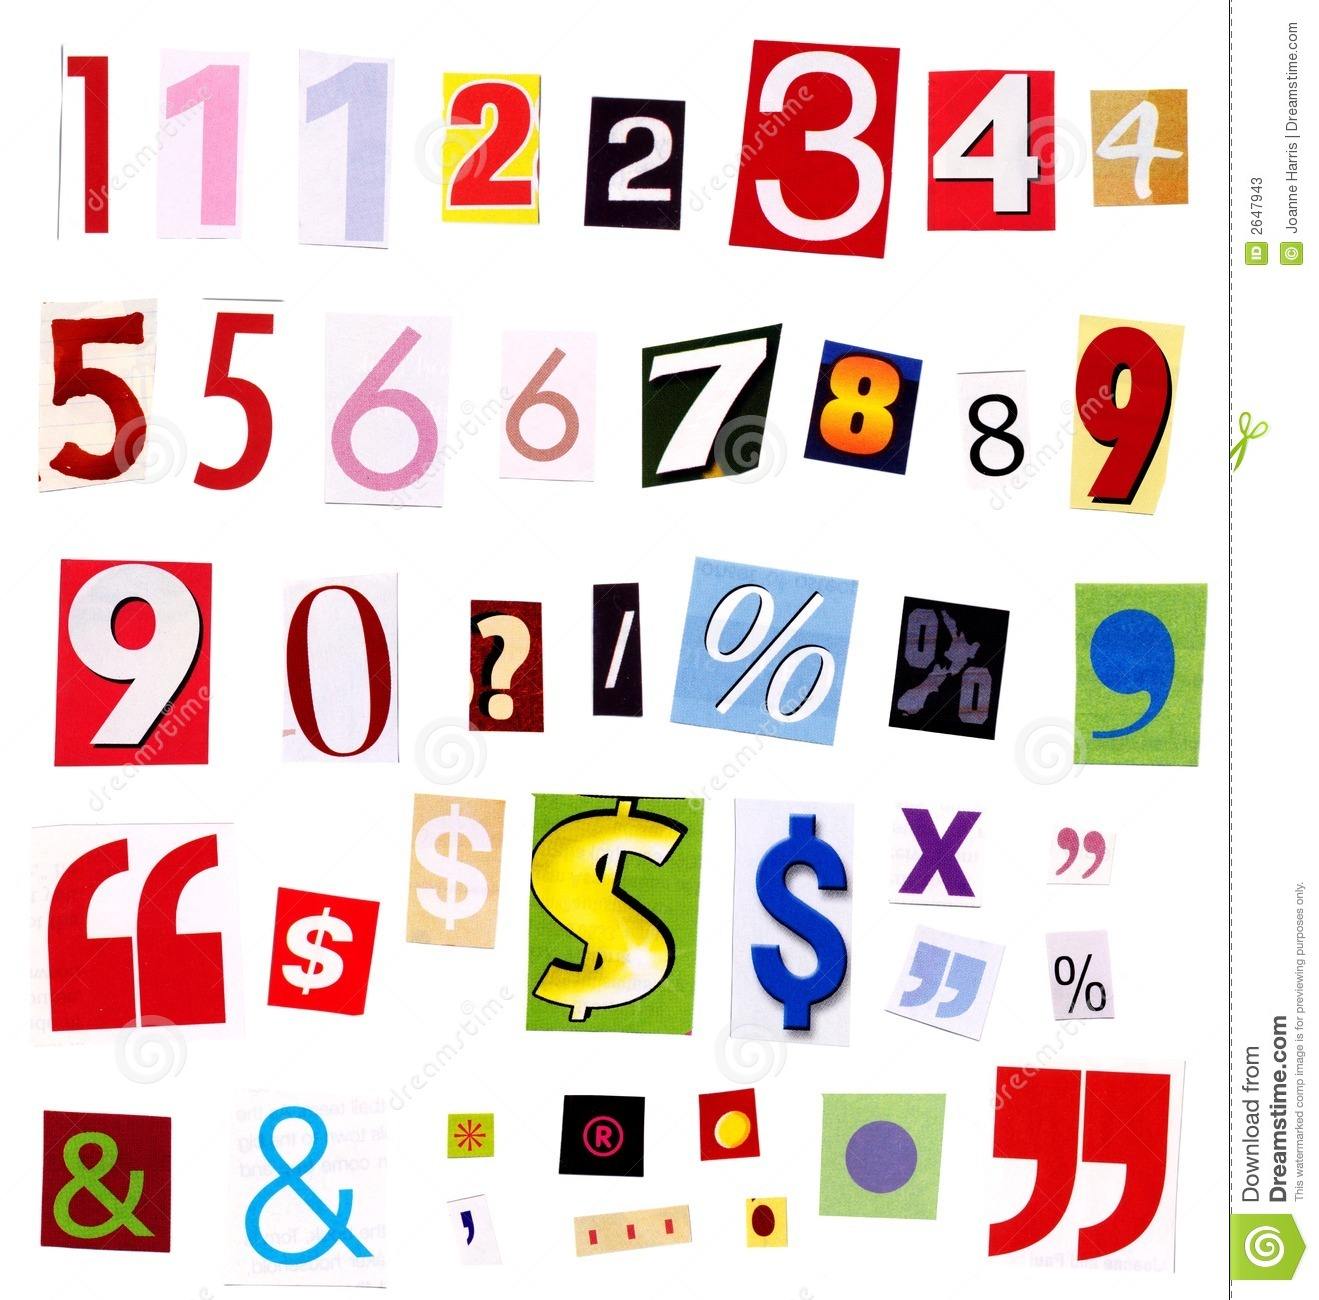 numbers magazine cutouts stock image  image of advertising